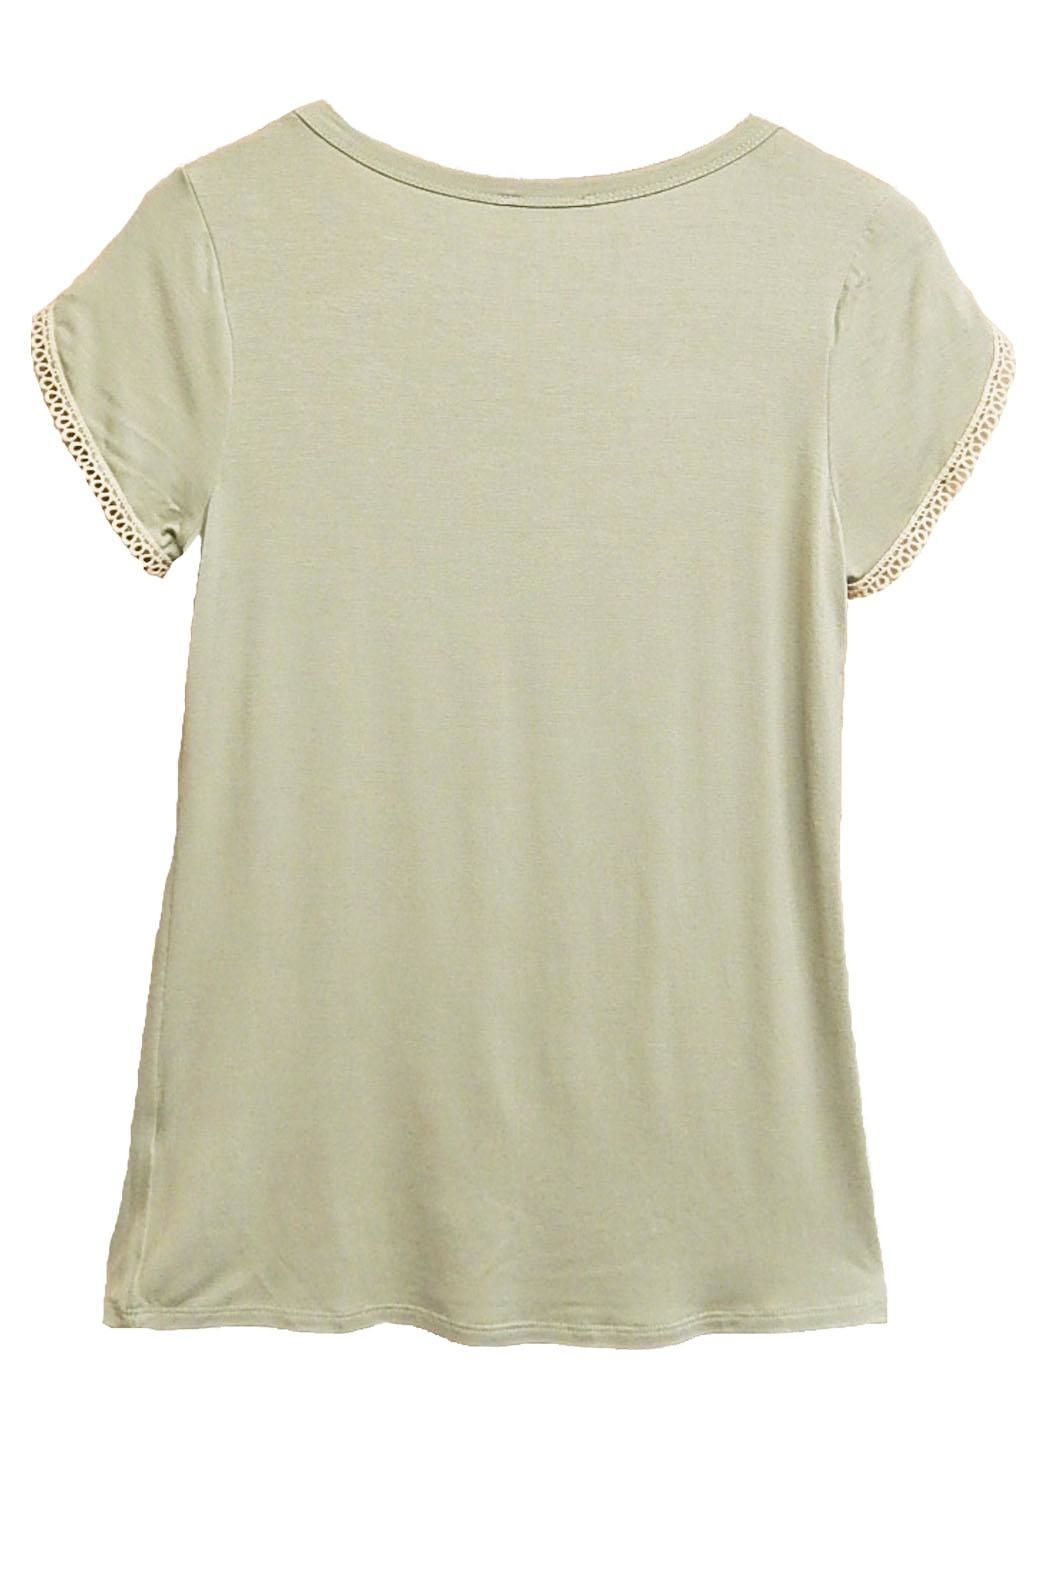 P.S Kate Green Beige-Lace Top - Front Full Image